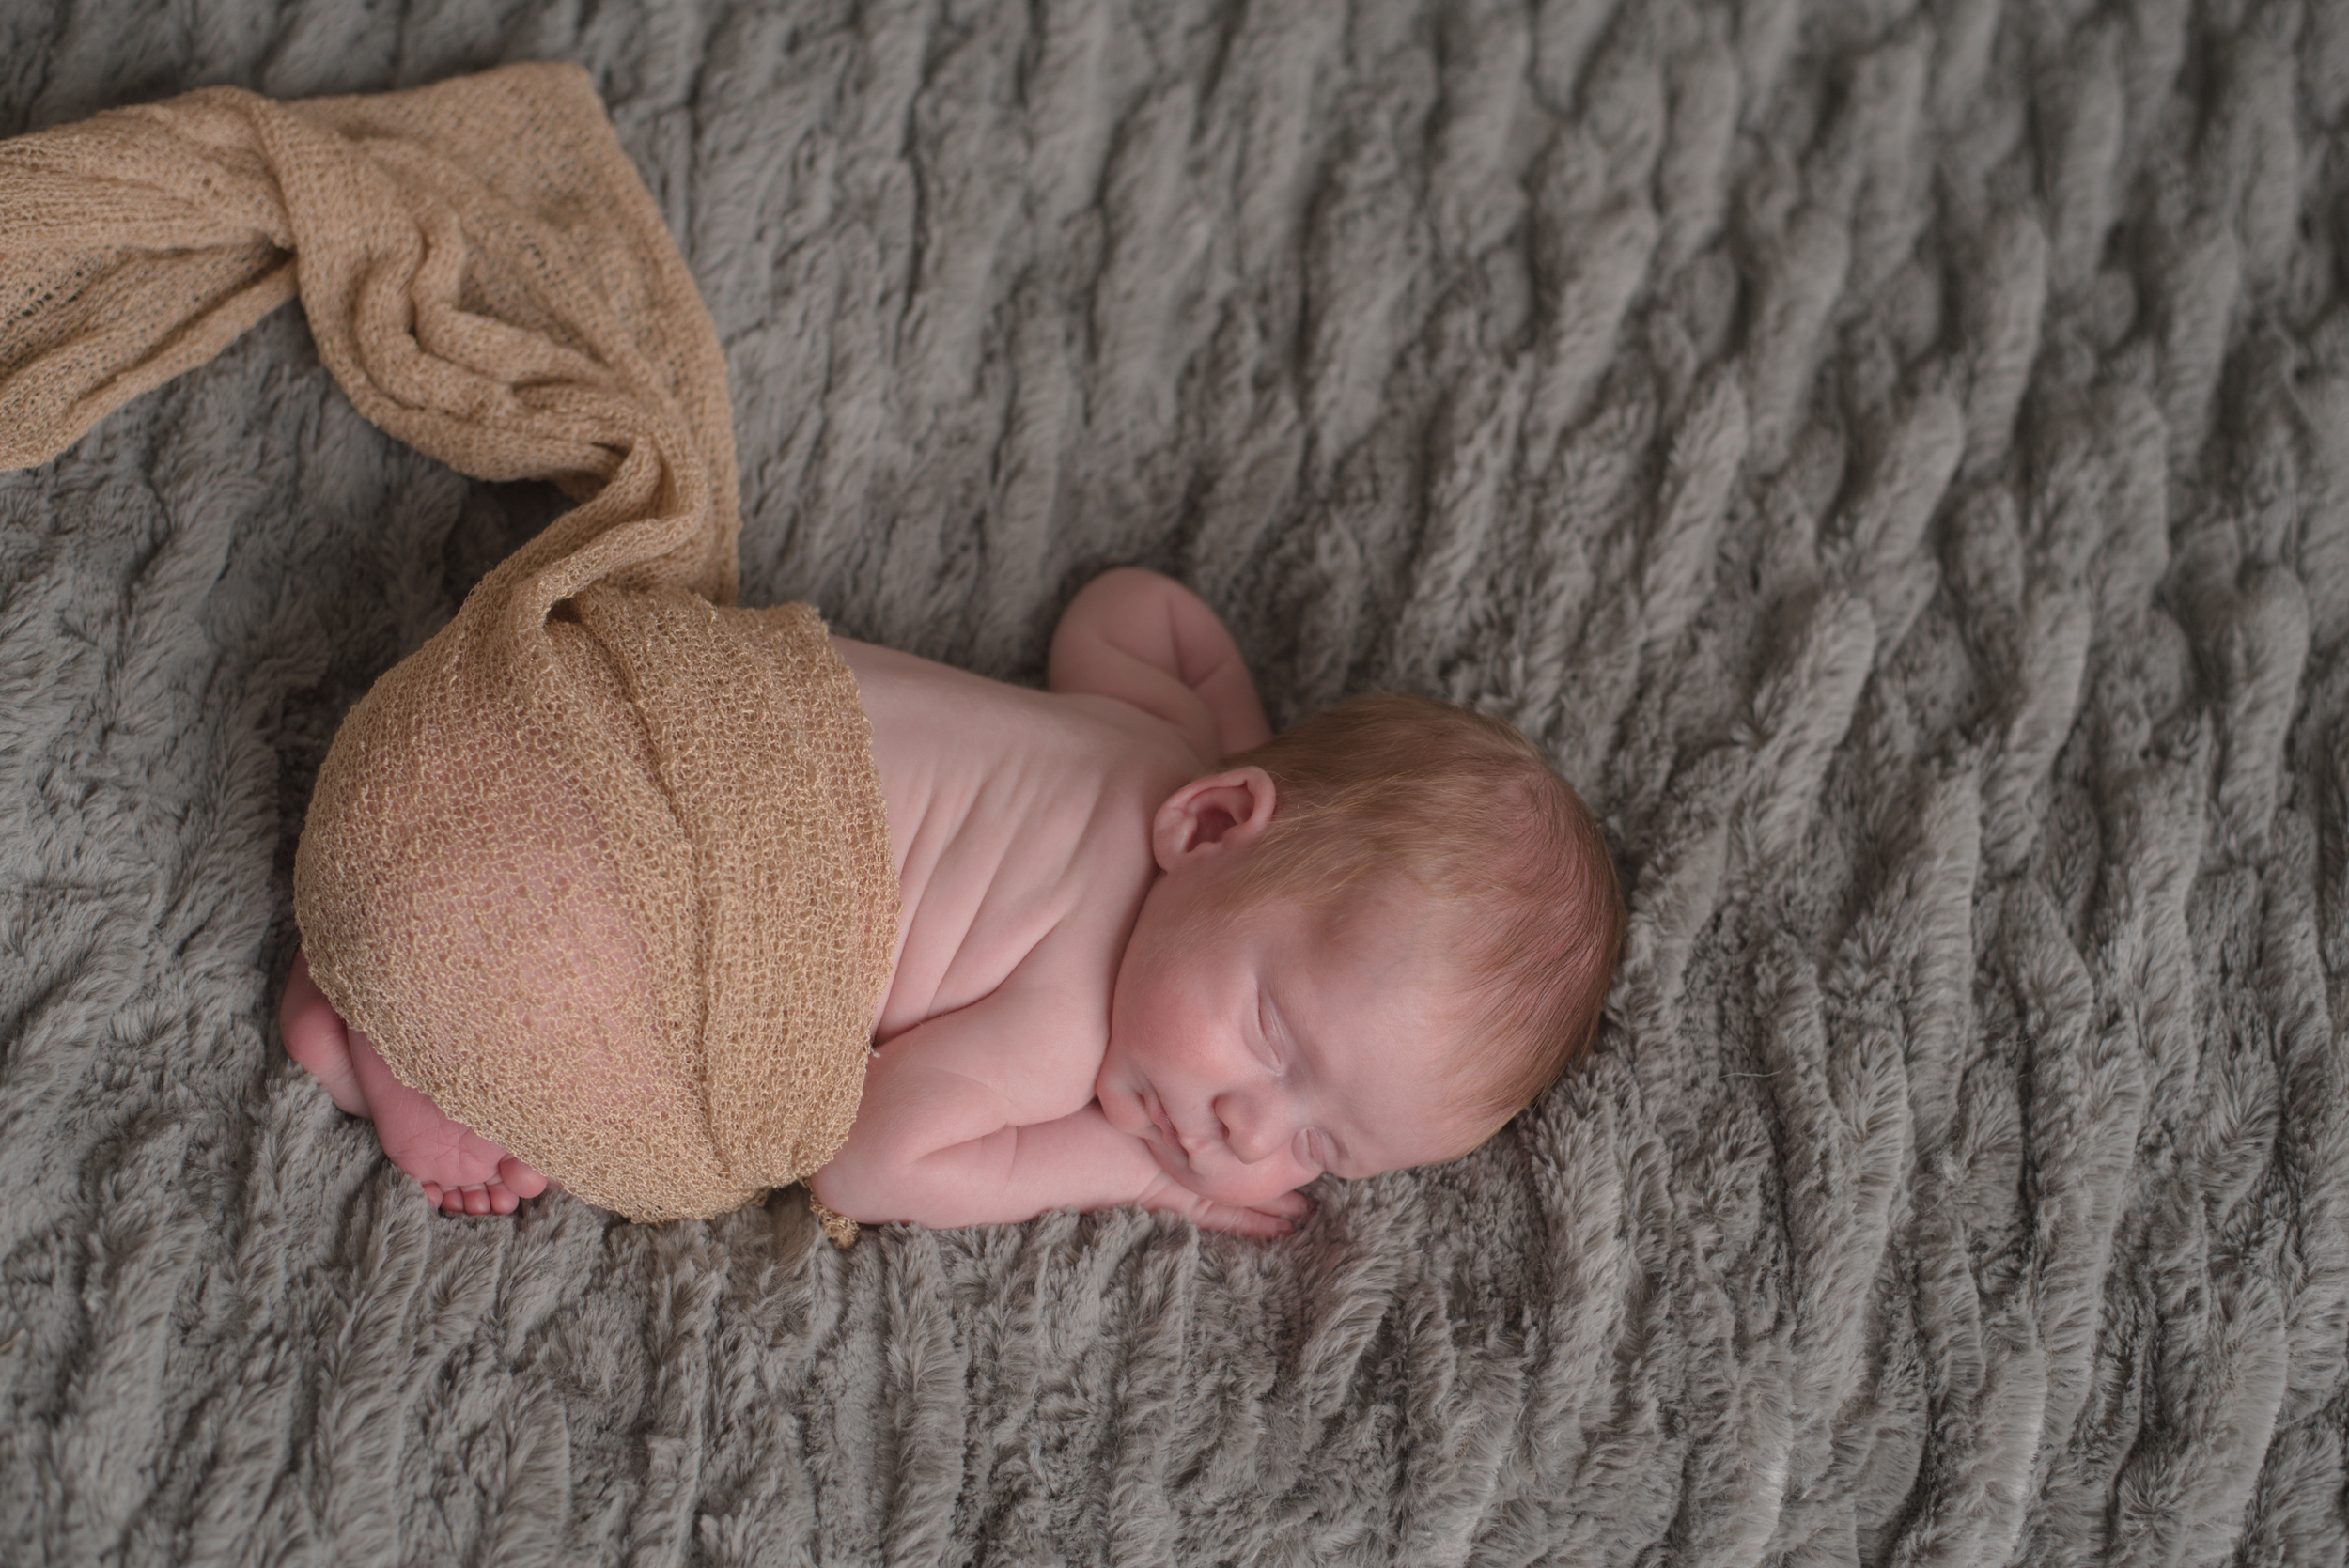 southwest-kansas-newborn-photography32.jpg